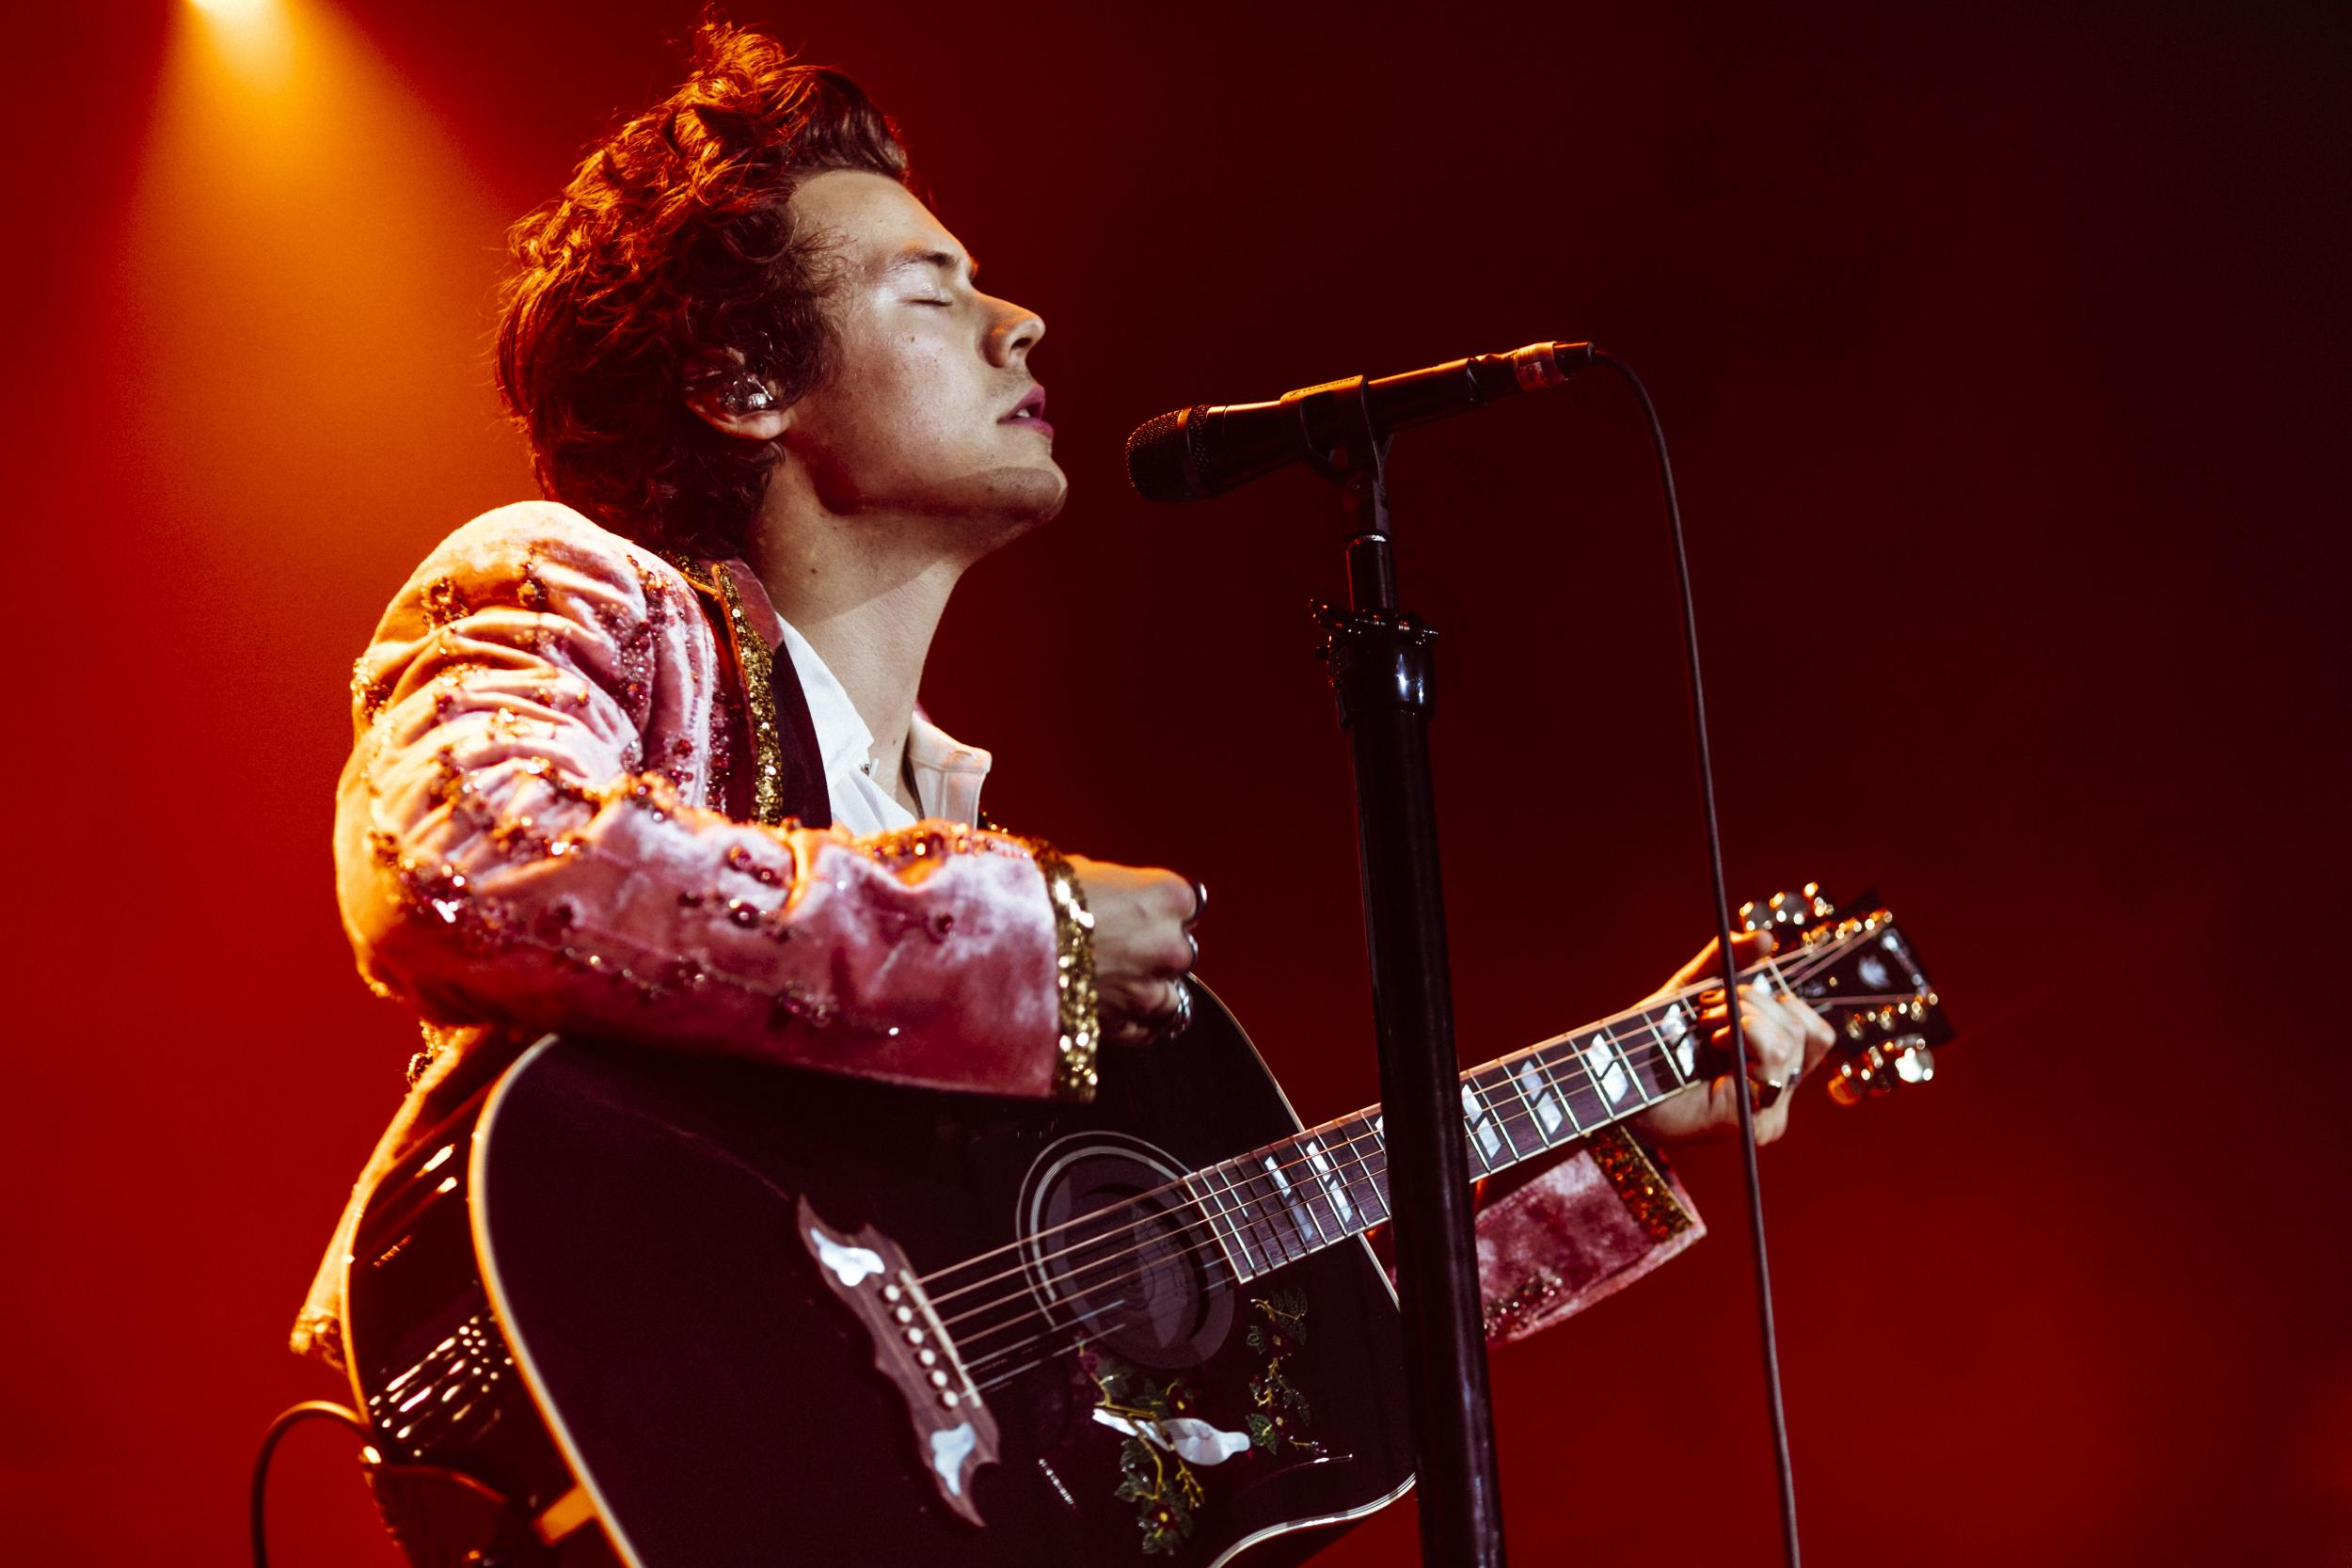 Harry Styles Review O2 Arena In London Former One Direction Star Impresses Crowds With Funk And Flair